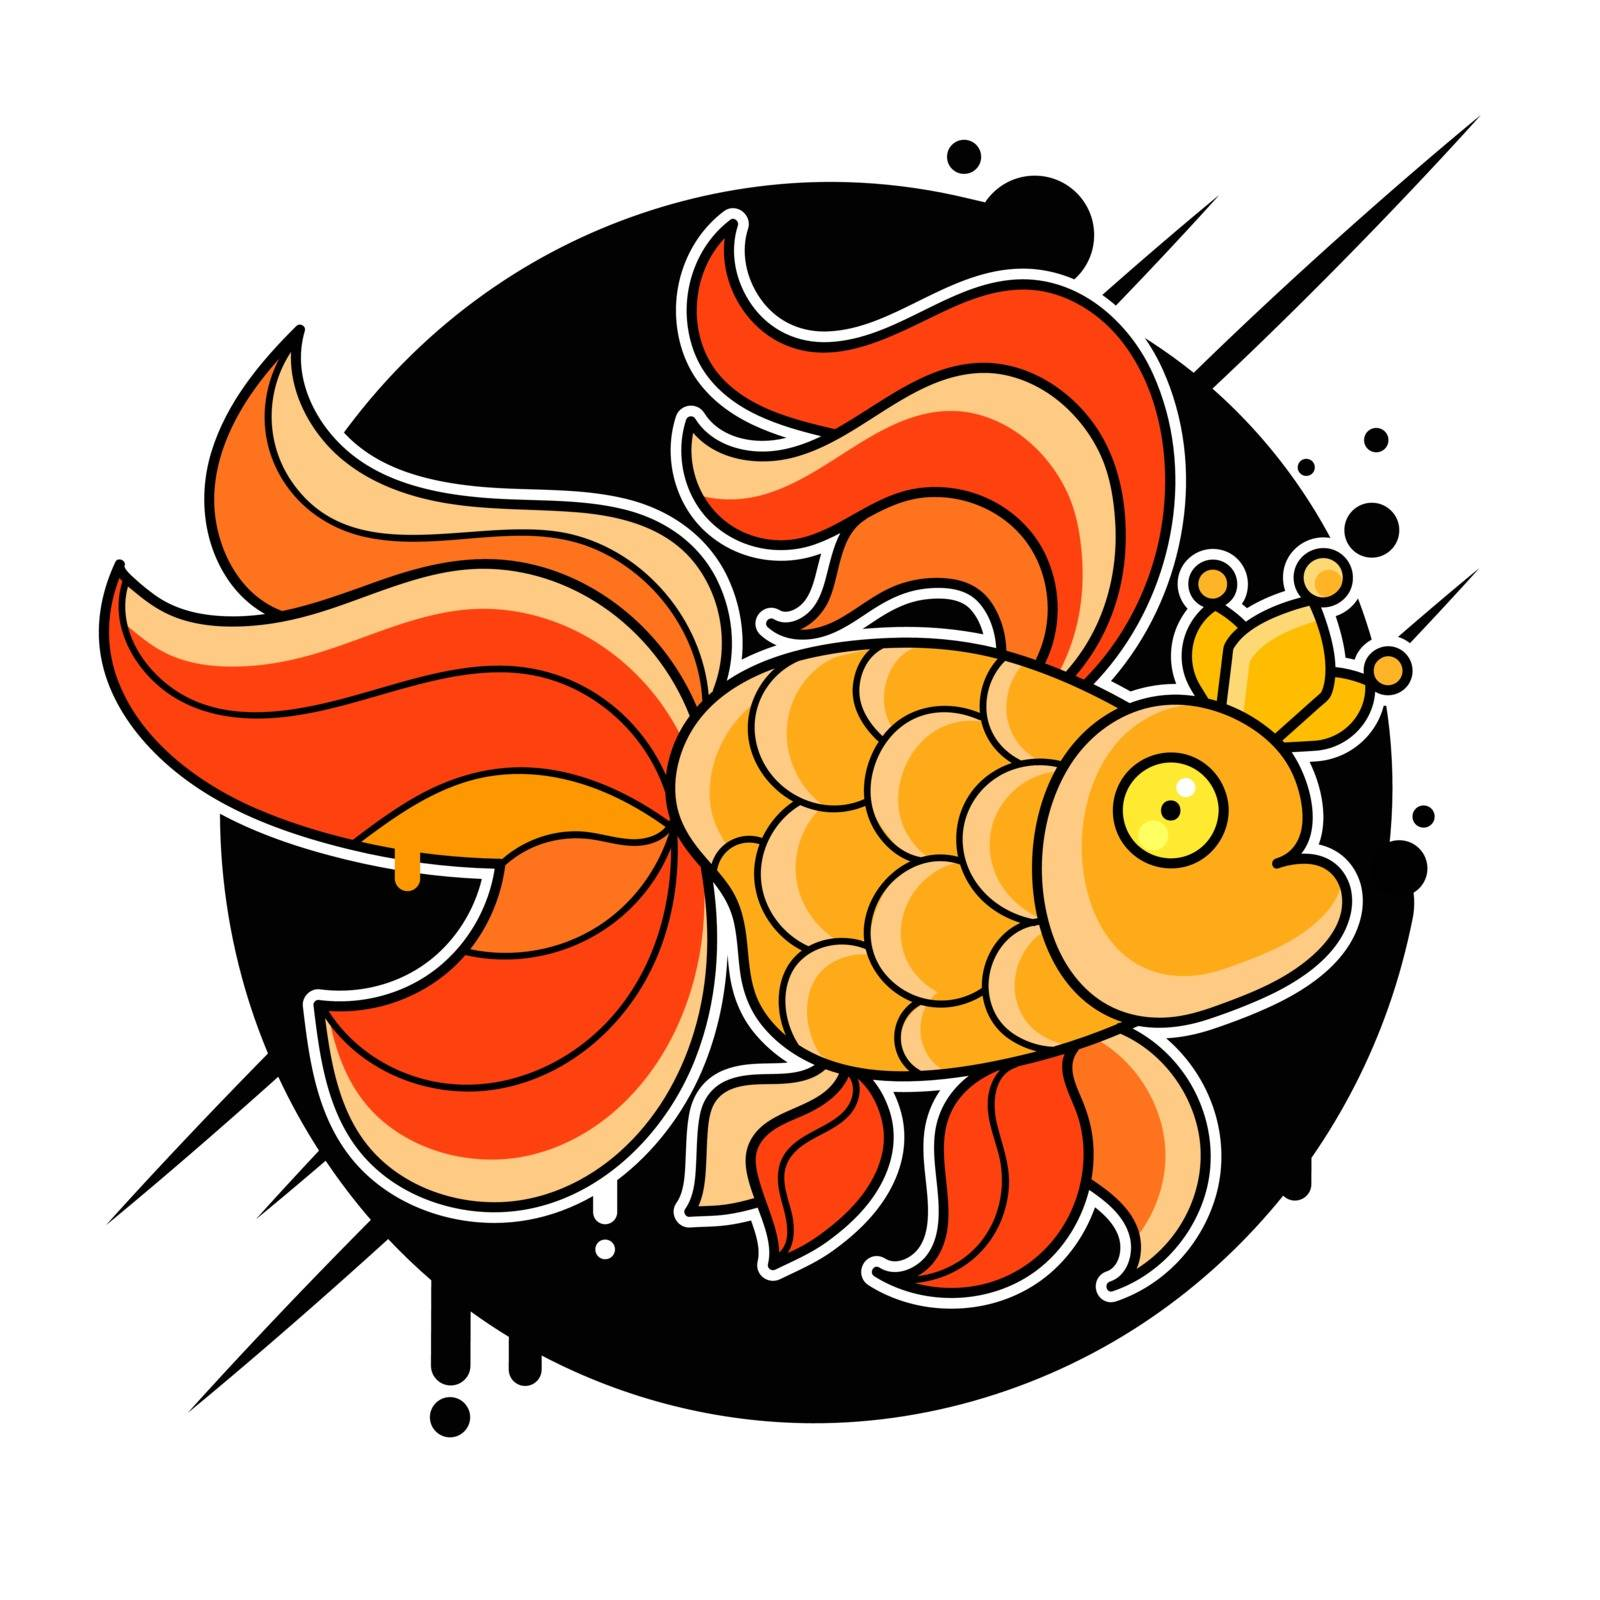 Gold Fish Logo Vector Illustration Suitable For Greeting Card, Poster Or T-shirt Printing.